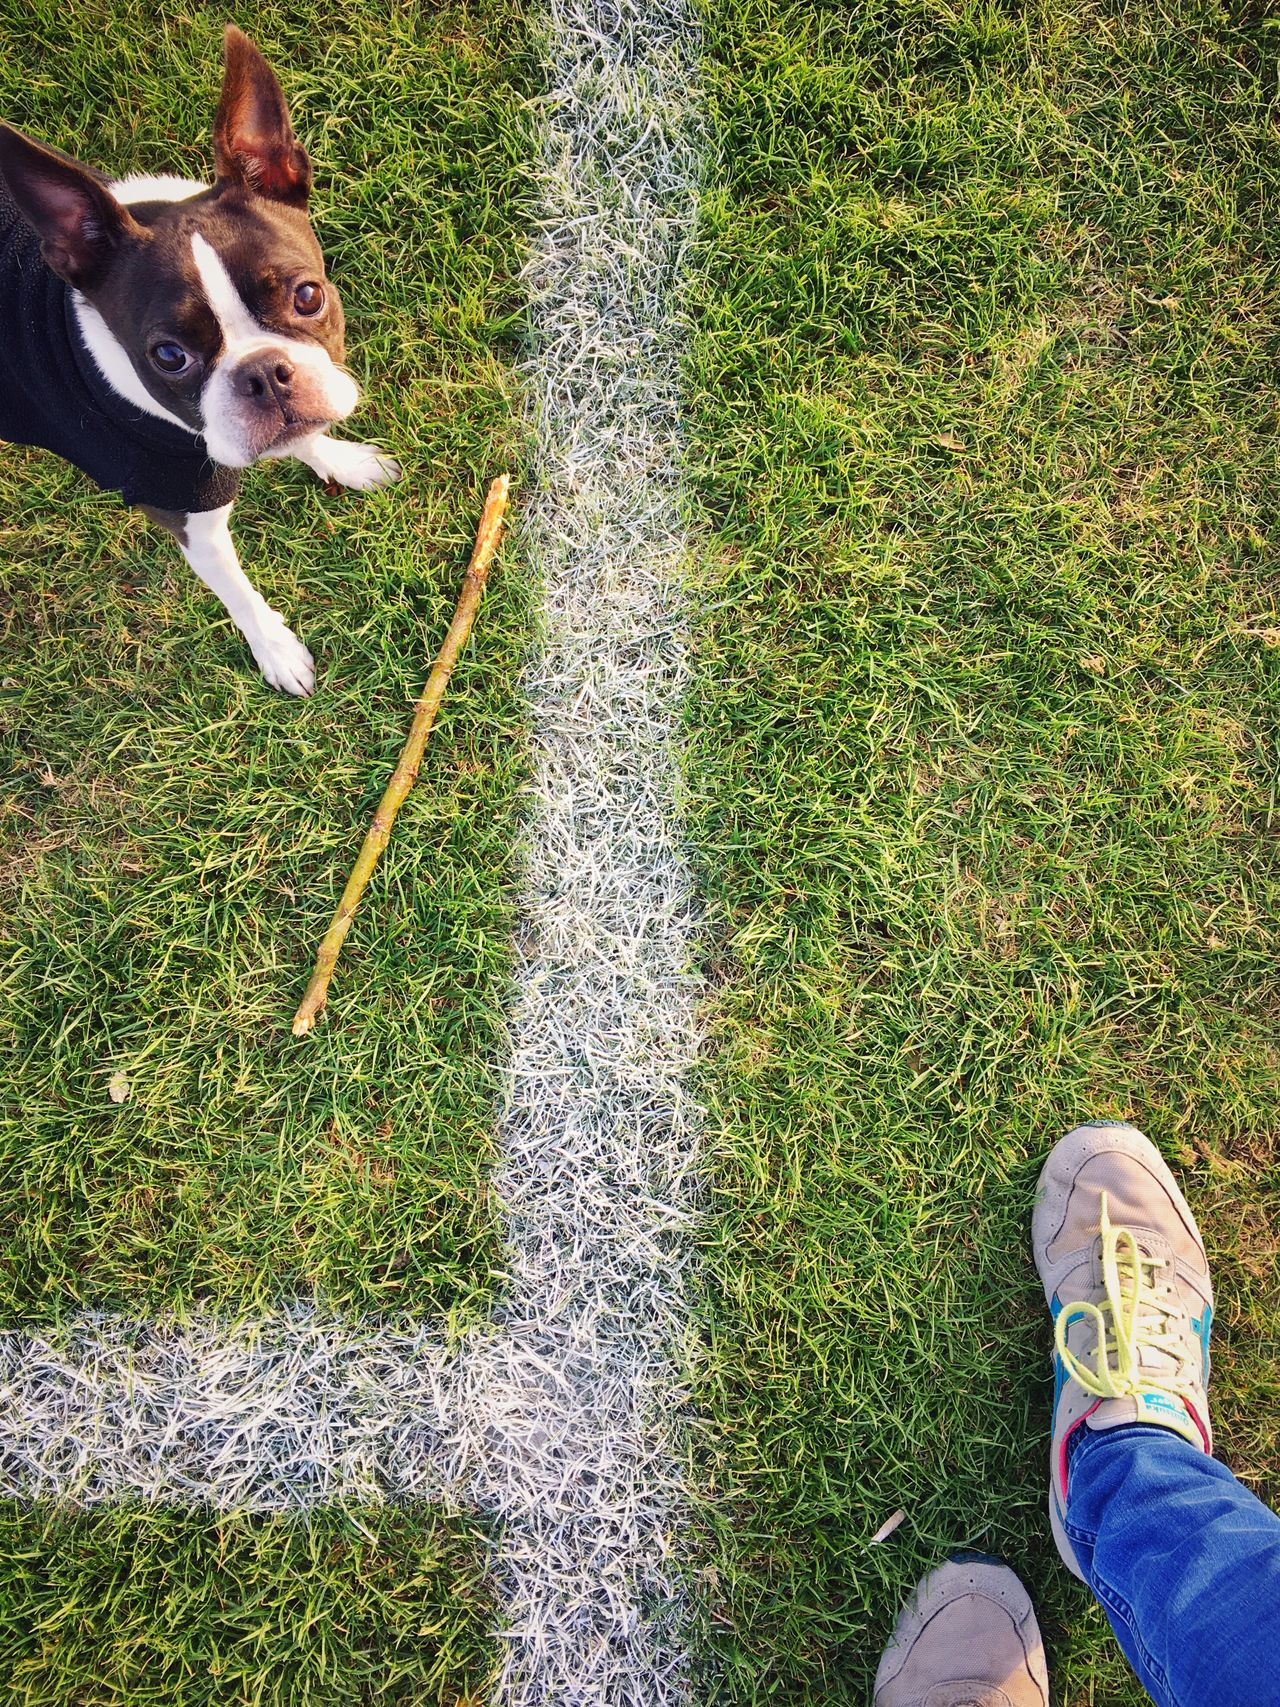 Enjoy The New Normal Boston Terrier Field Grass Lawn London London Lifestyle Park Life Stick Dog Pet Trainer Shoe Playground